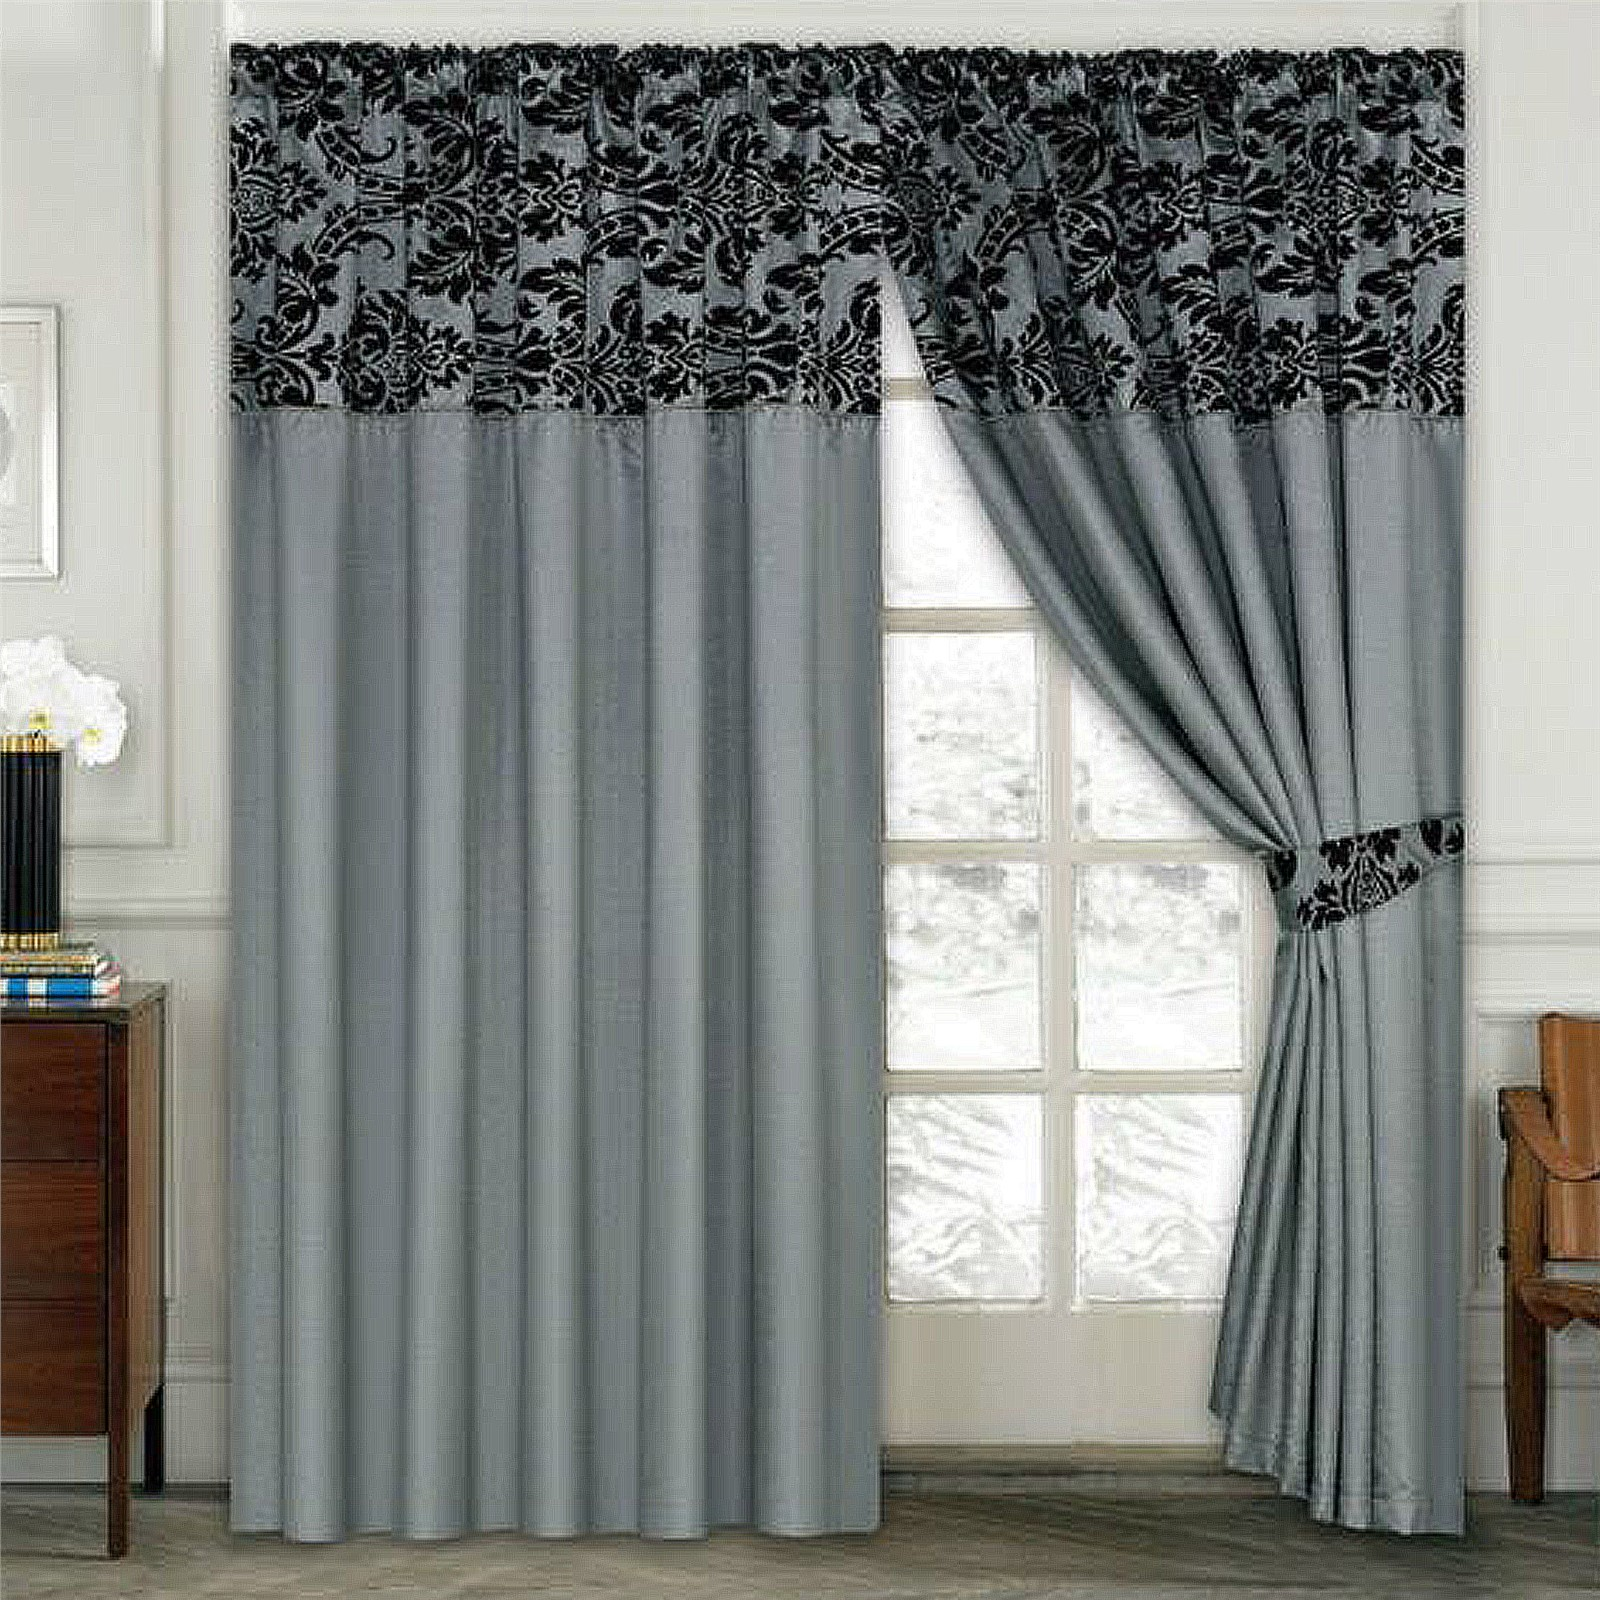 Luxury damask curtains pair of half flock pencil pleat for Bedrooms curtains photos